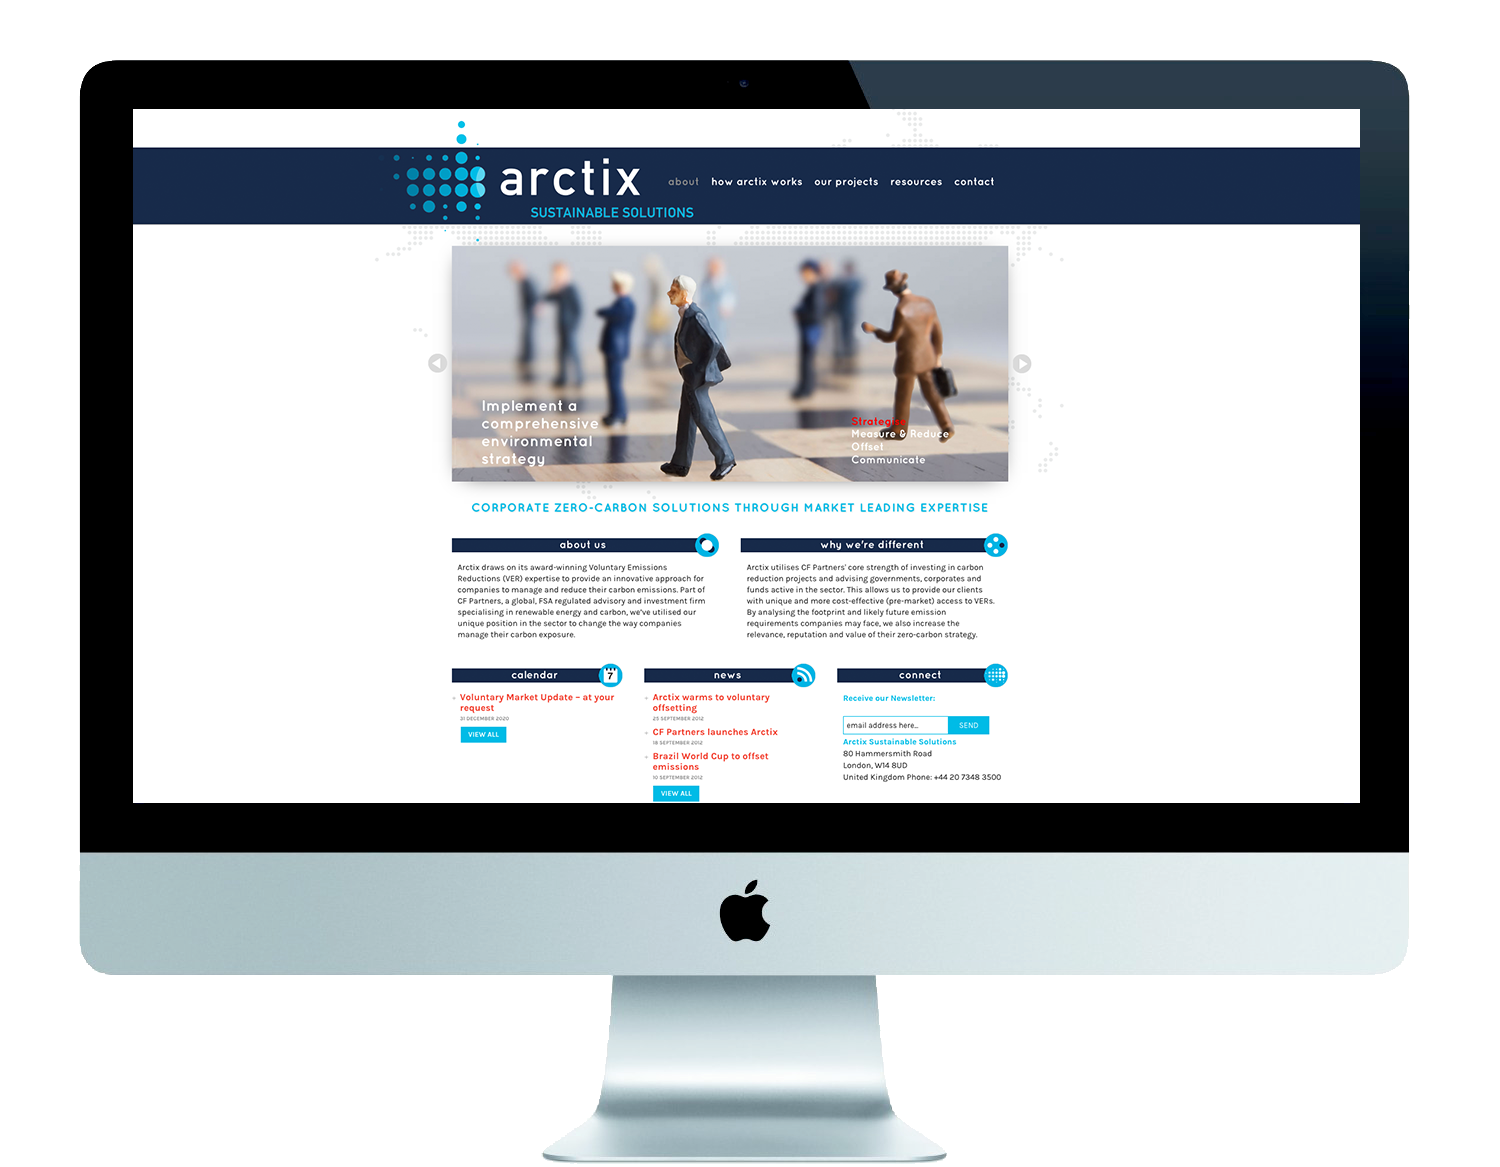 arctix-website-01